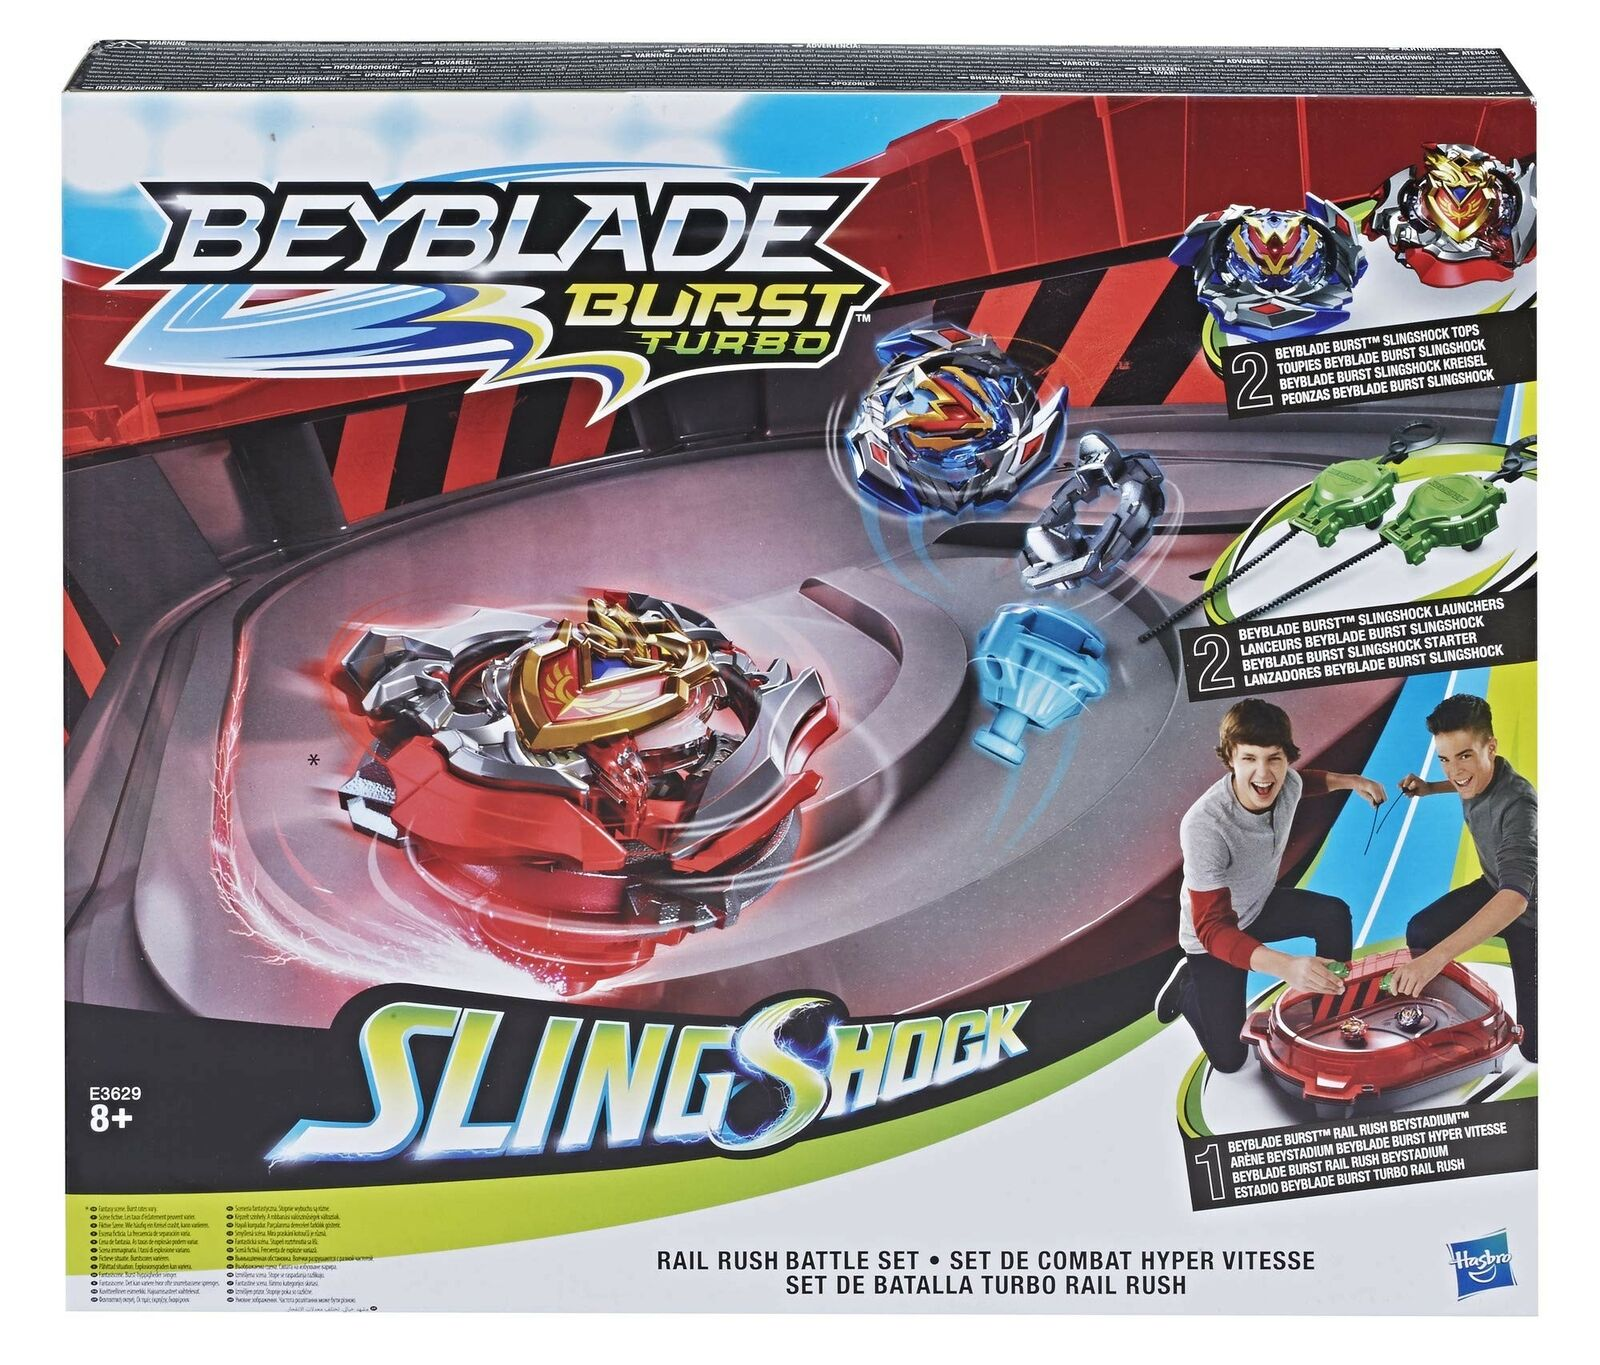 Beyblade BEY BLADE E3629EU5 Rail Rush Battle Figure Set Multi-Colour